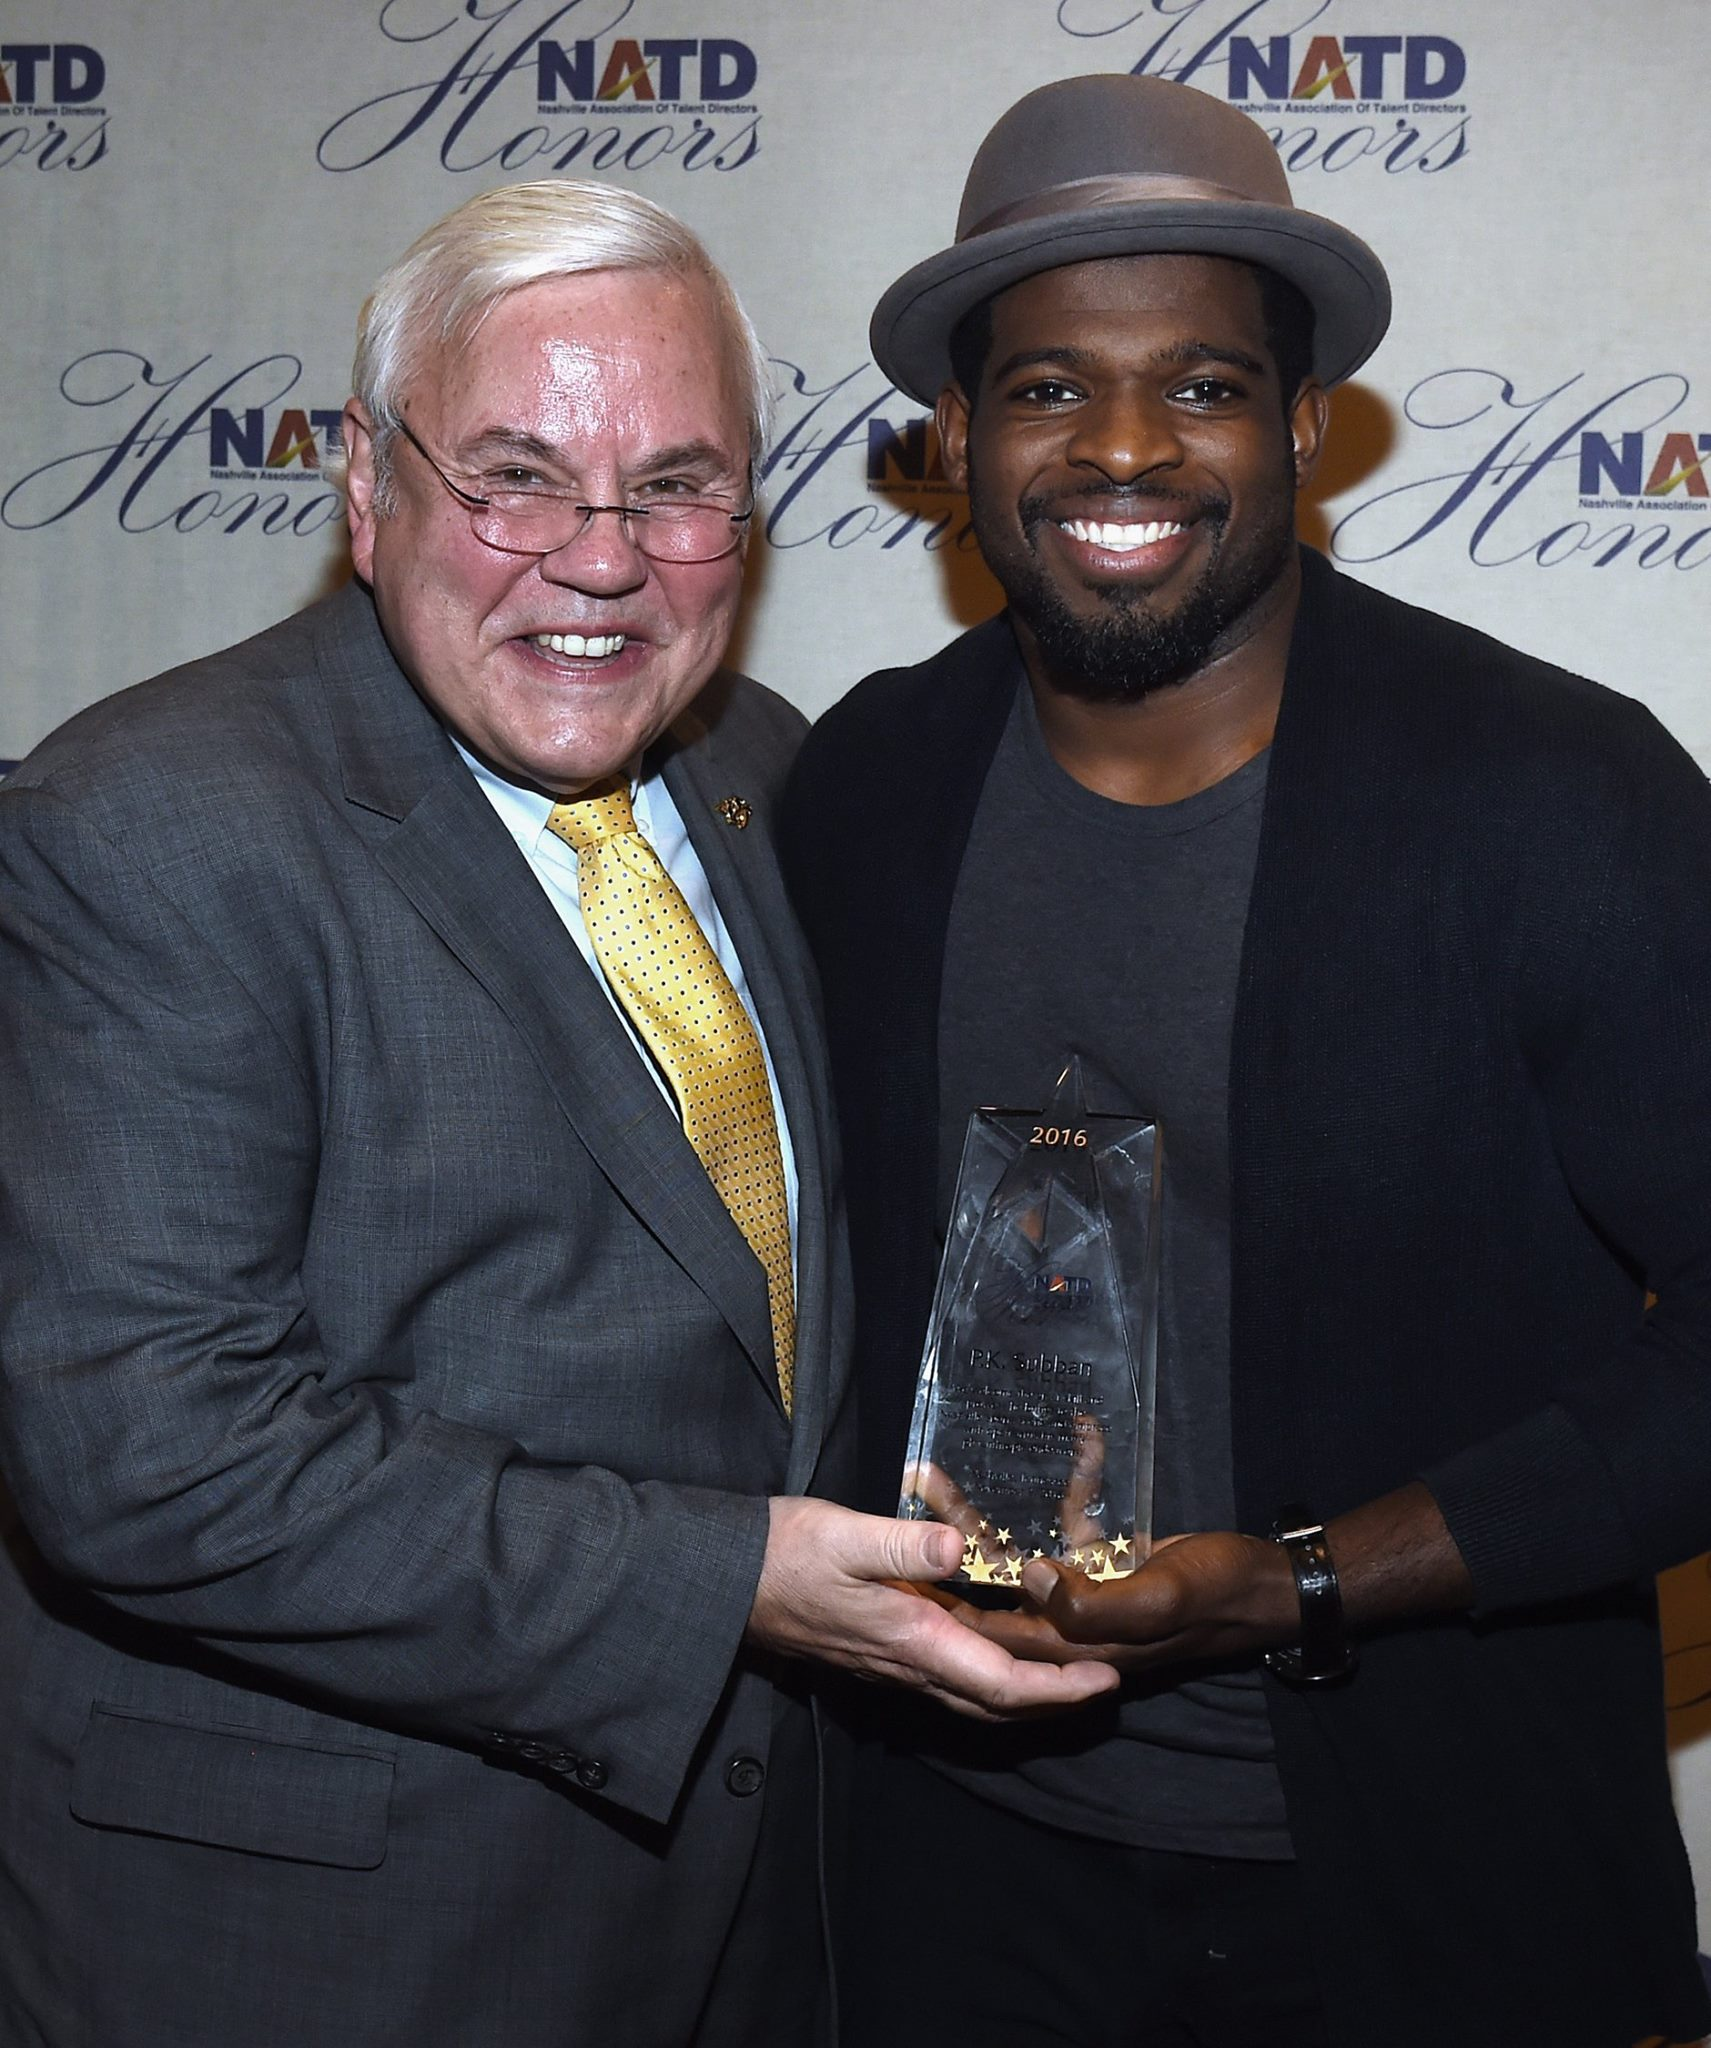 Voice of The Nashville Predators Pete Webber and Honoree P.K. Subban